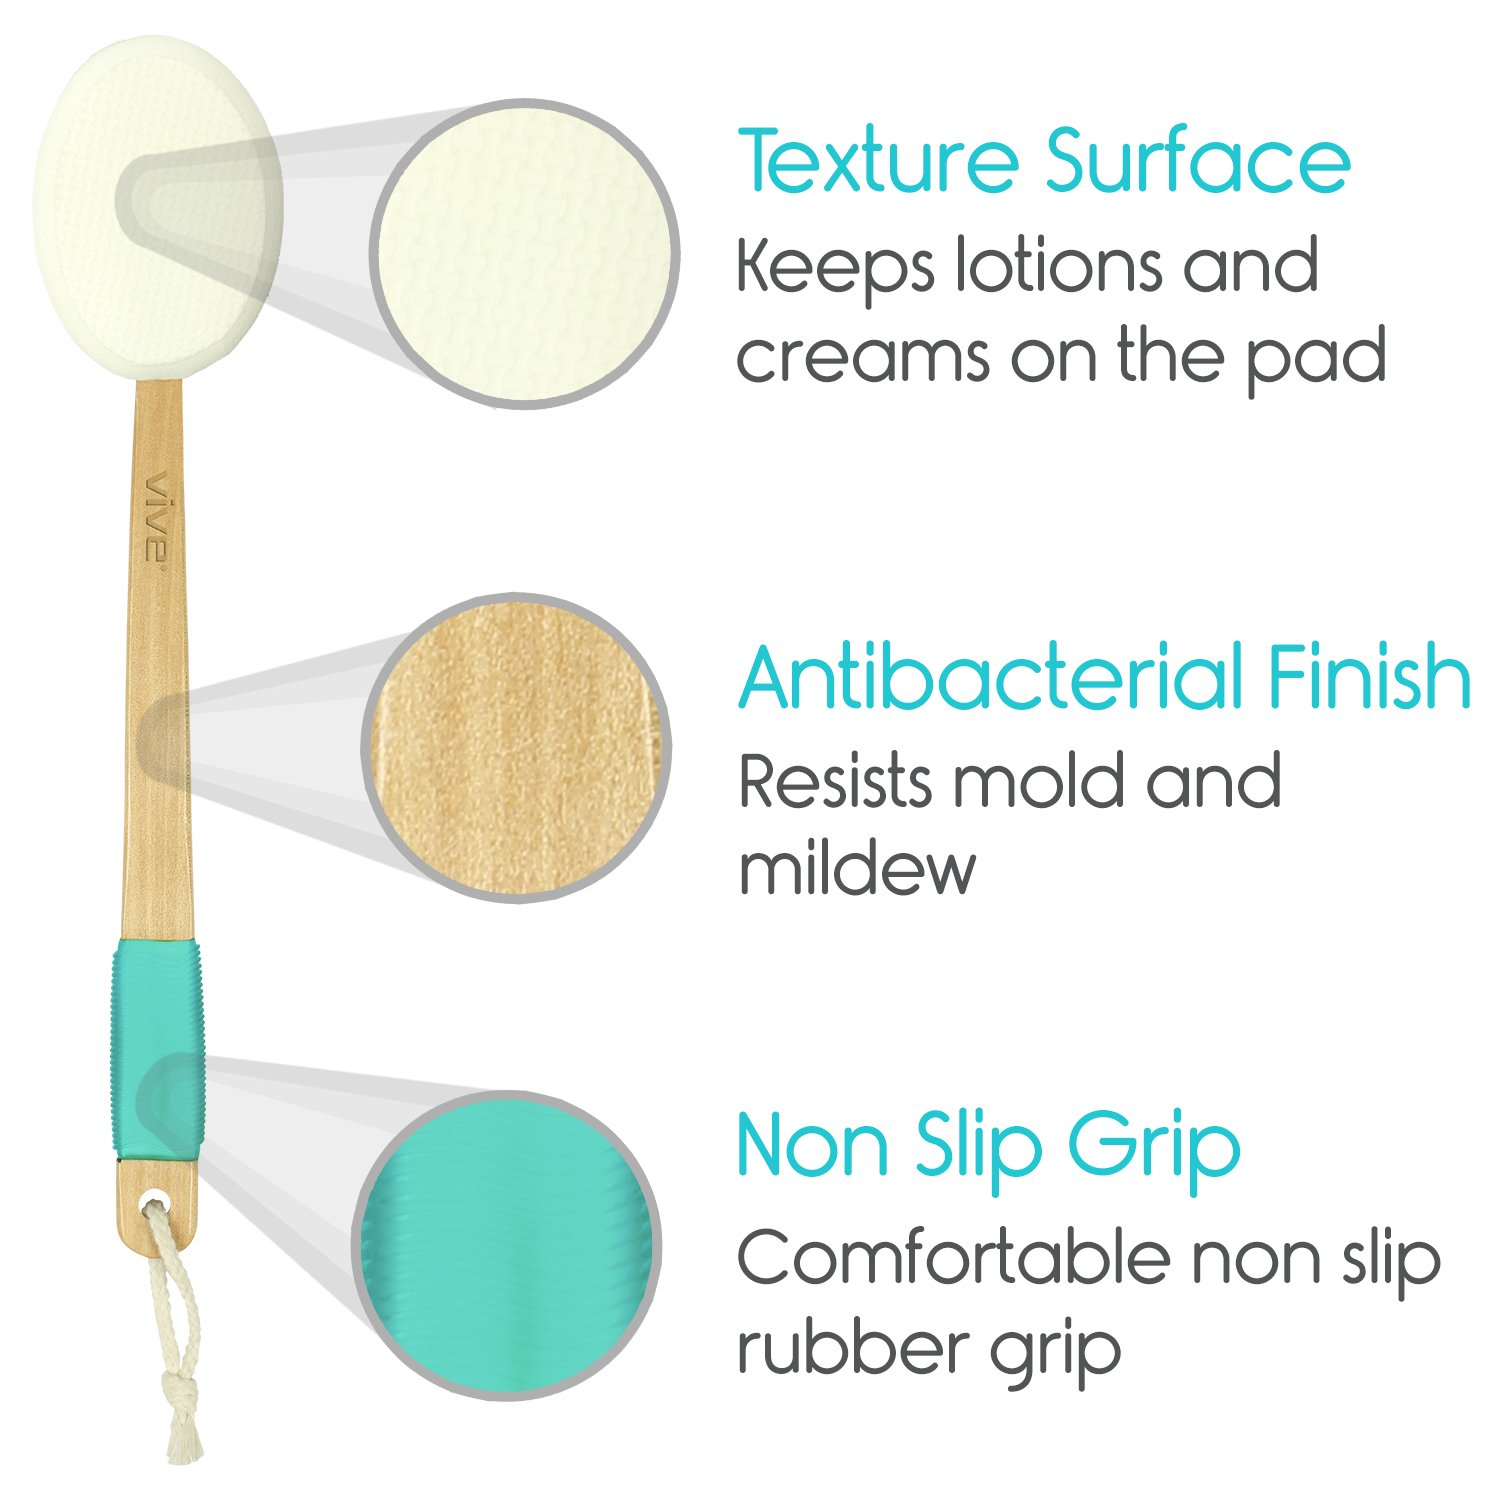 Back Lotion Applicator by Vive - Long Reach Handle With Pad for Easy Self Application of Shower Bath Body Wash Brush, Foot Sponge, Skin Cream, Suntan, Tanning, Aloe - Men, Women (3 Replacement Pads) by VIVE (Image #3)